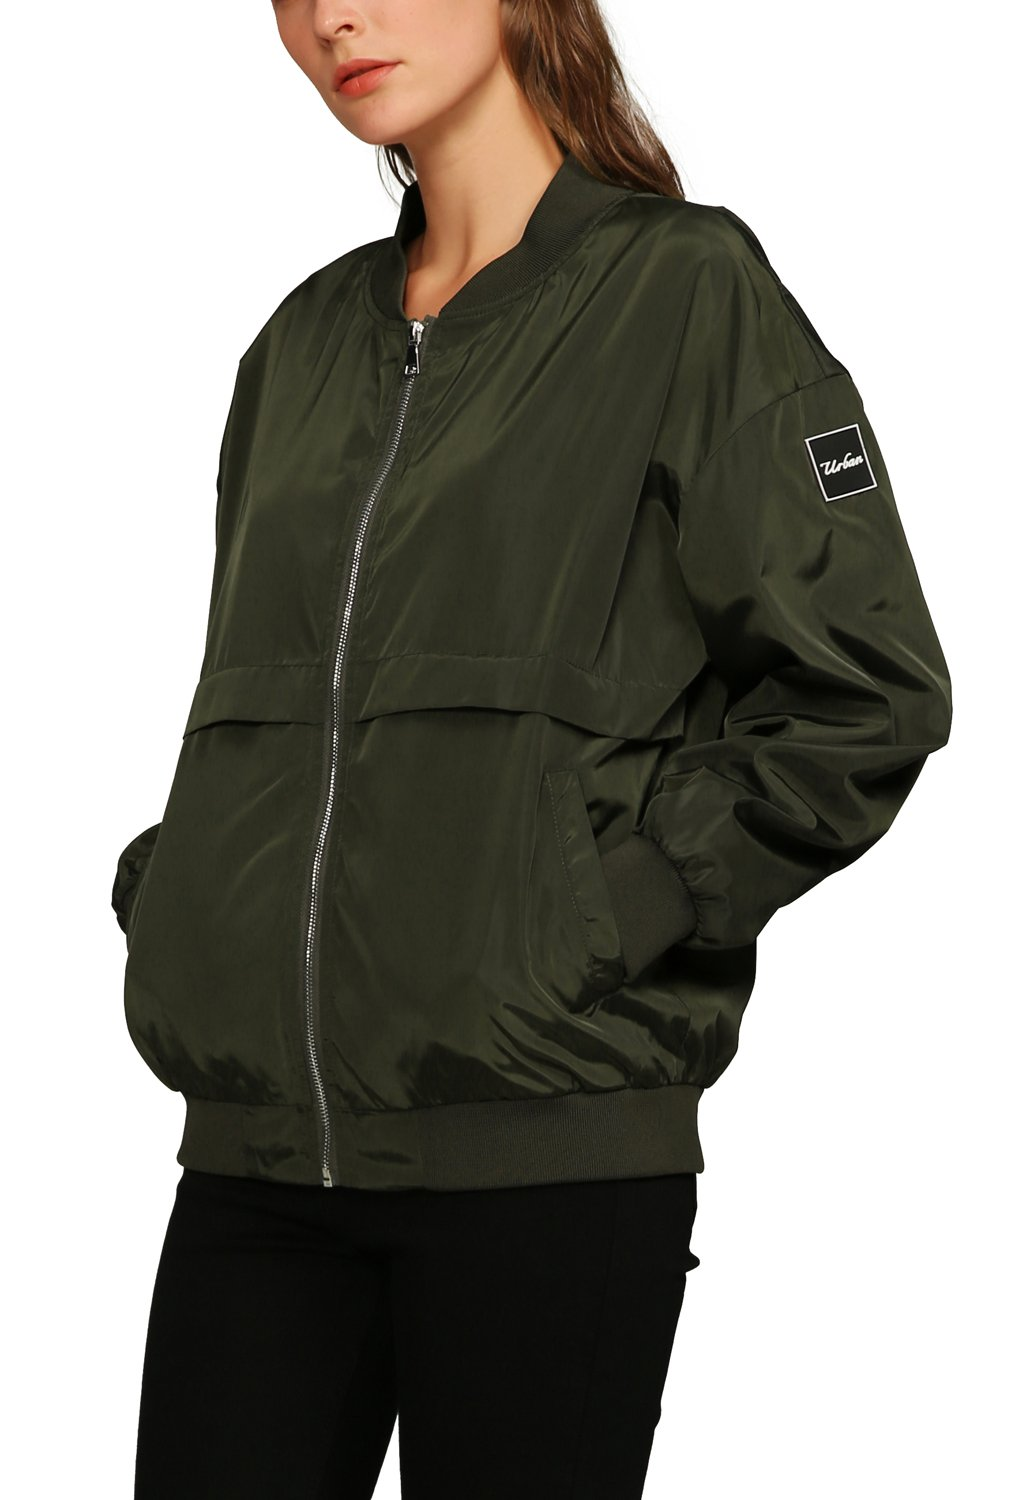 Urban CoCo Women's Classic Bomber Jacket Biker Zipper Coat (S, Army Green)